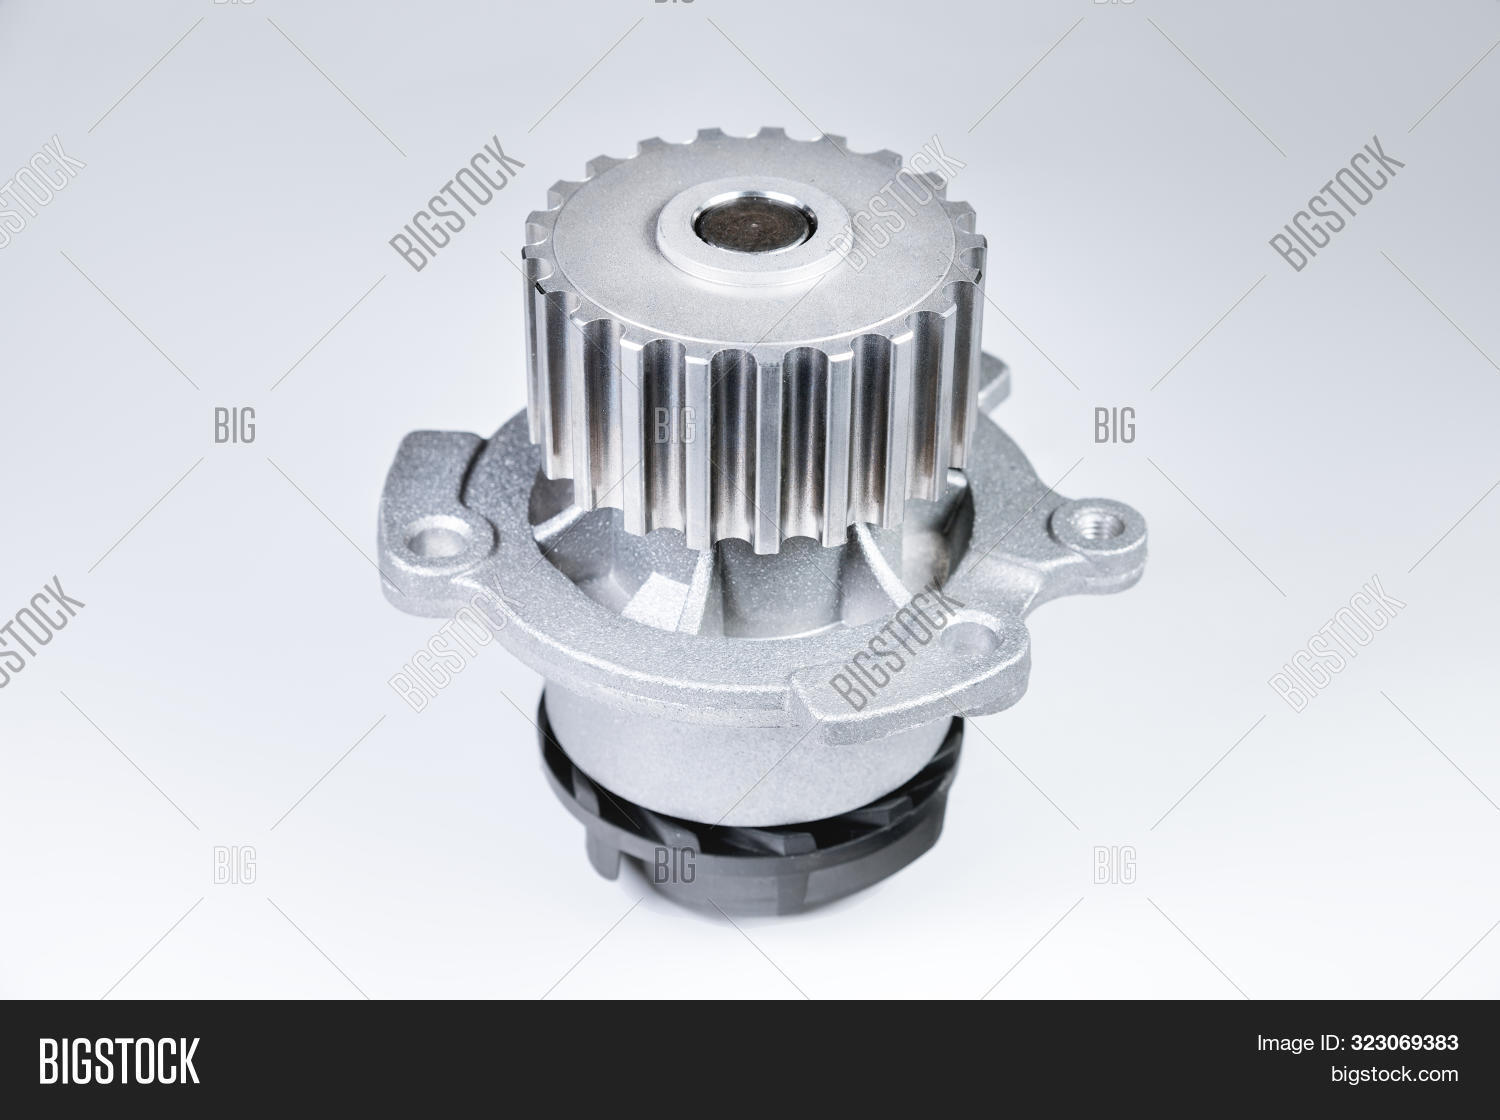 aluminum,antifreeze,auto,automobile,automotive,background,belt,car,chill,clean,close-up,closeup,cooling,engine,engineering,equipment,gear,glitter,gradient,gray,impeller,industry,machine,mechanic,mechanical,metal,metallic,motor,new,object,part,pomp,power,pump,refrigeration,repair,replacement,service,spare,steel,system,technology,timing,transportation,vehicle,water,white